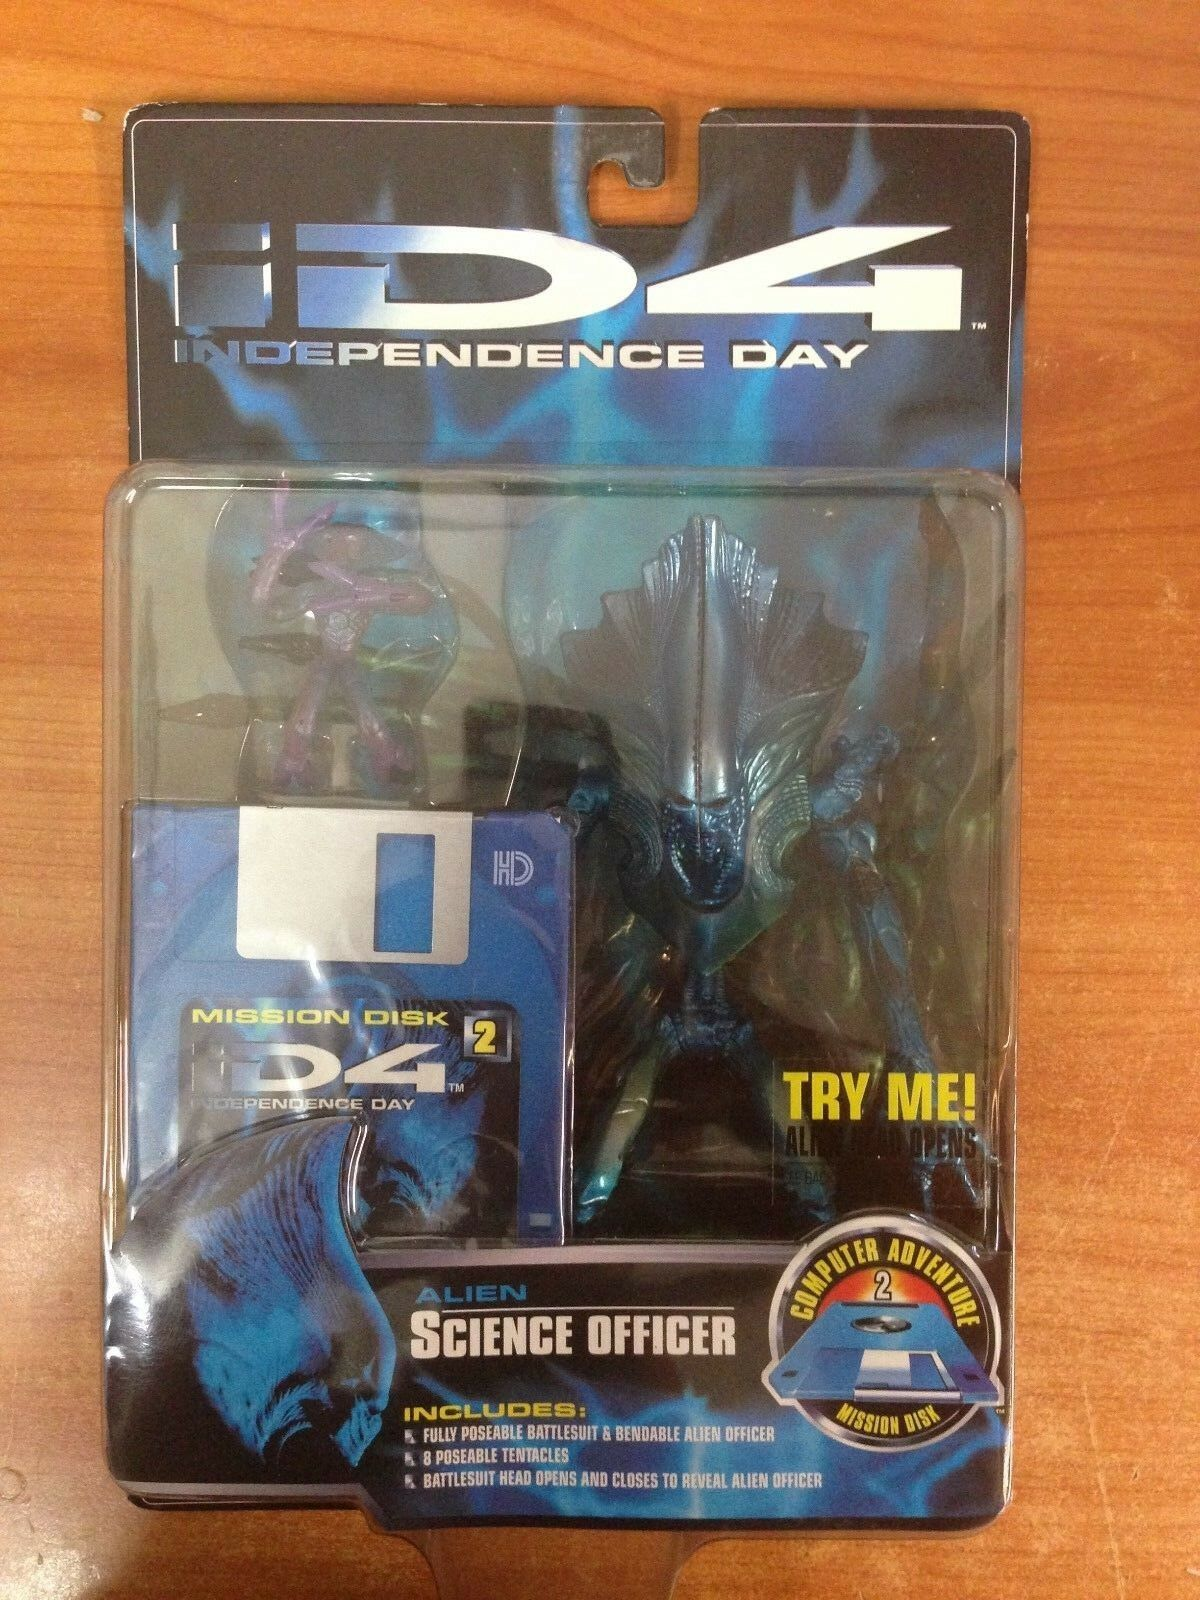 1996 Independence Day ID4 Action Figure - Alien Science Officer - New & Sealed